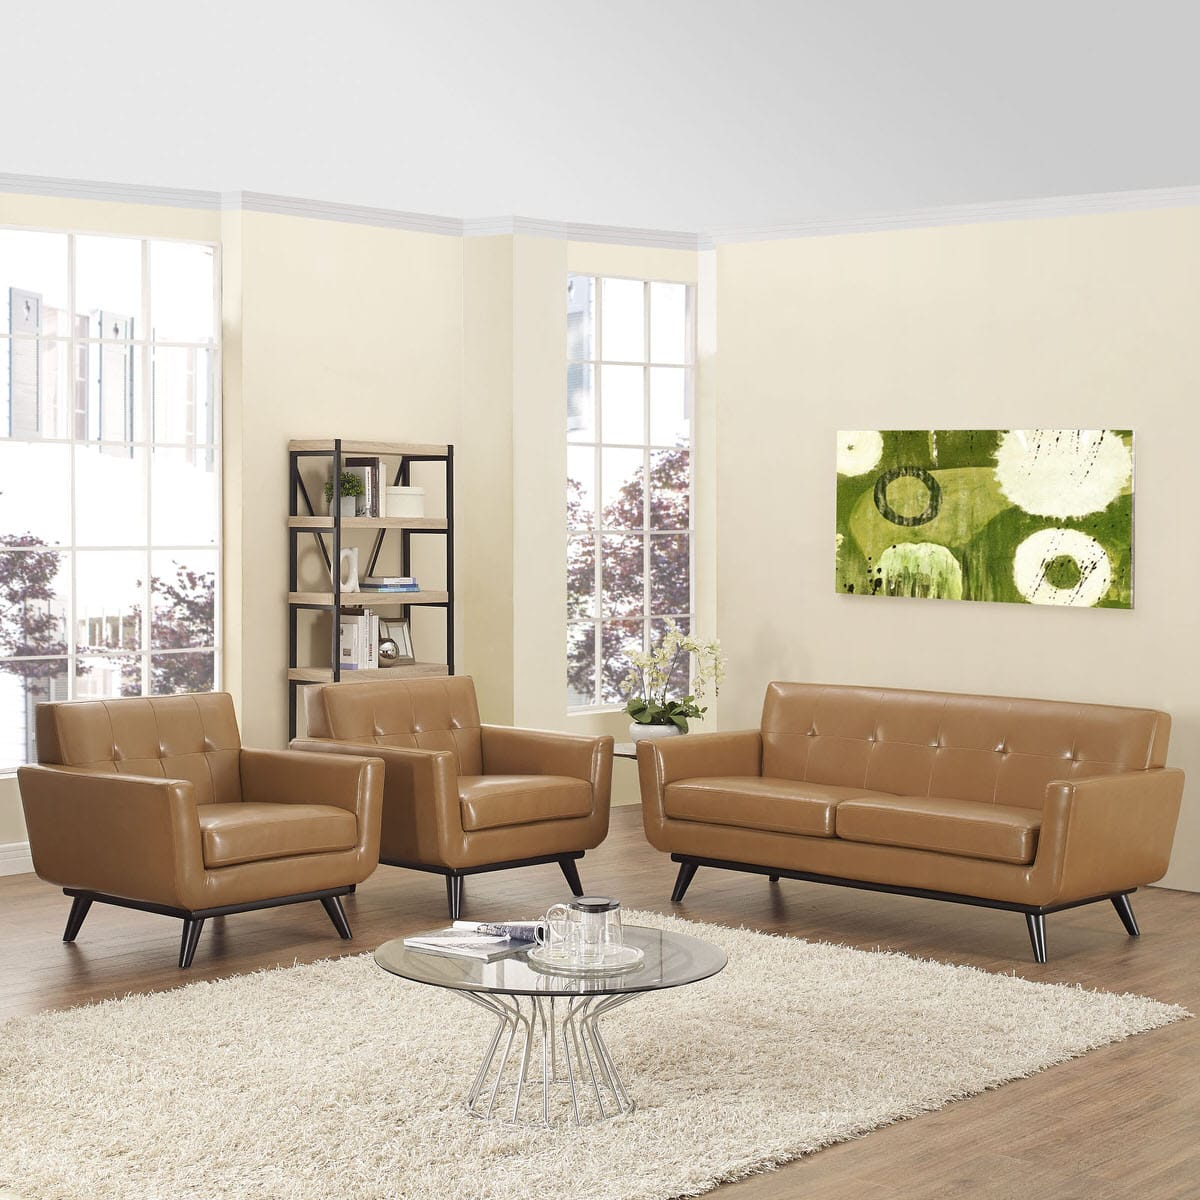 Engage 3 Piece Leather Living Room Set Tan by Modern Living